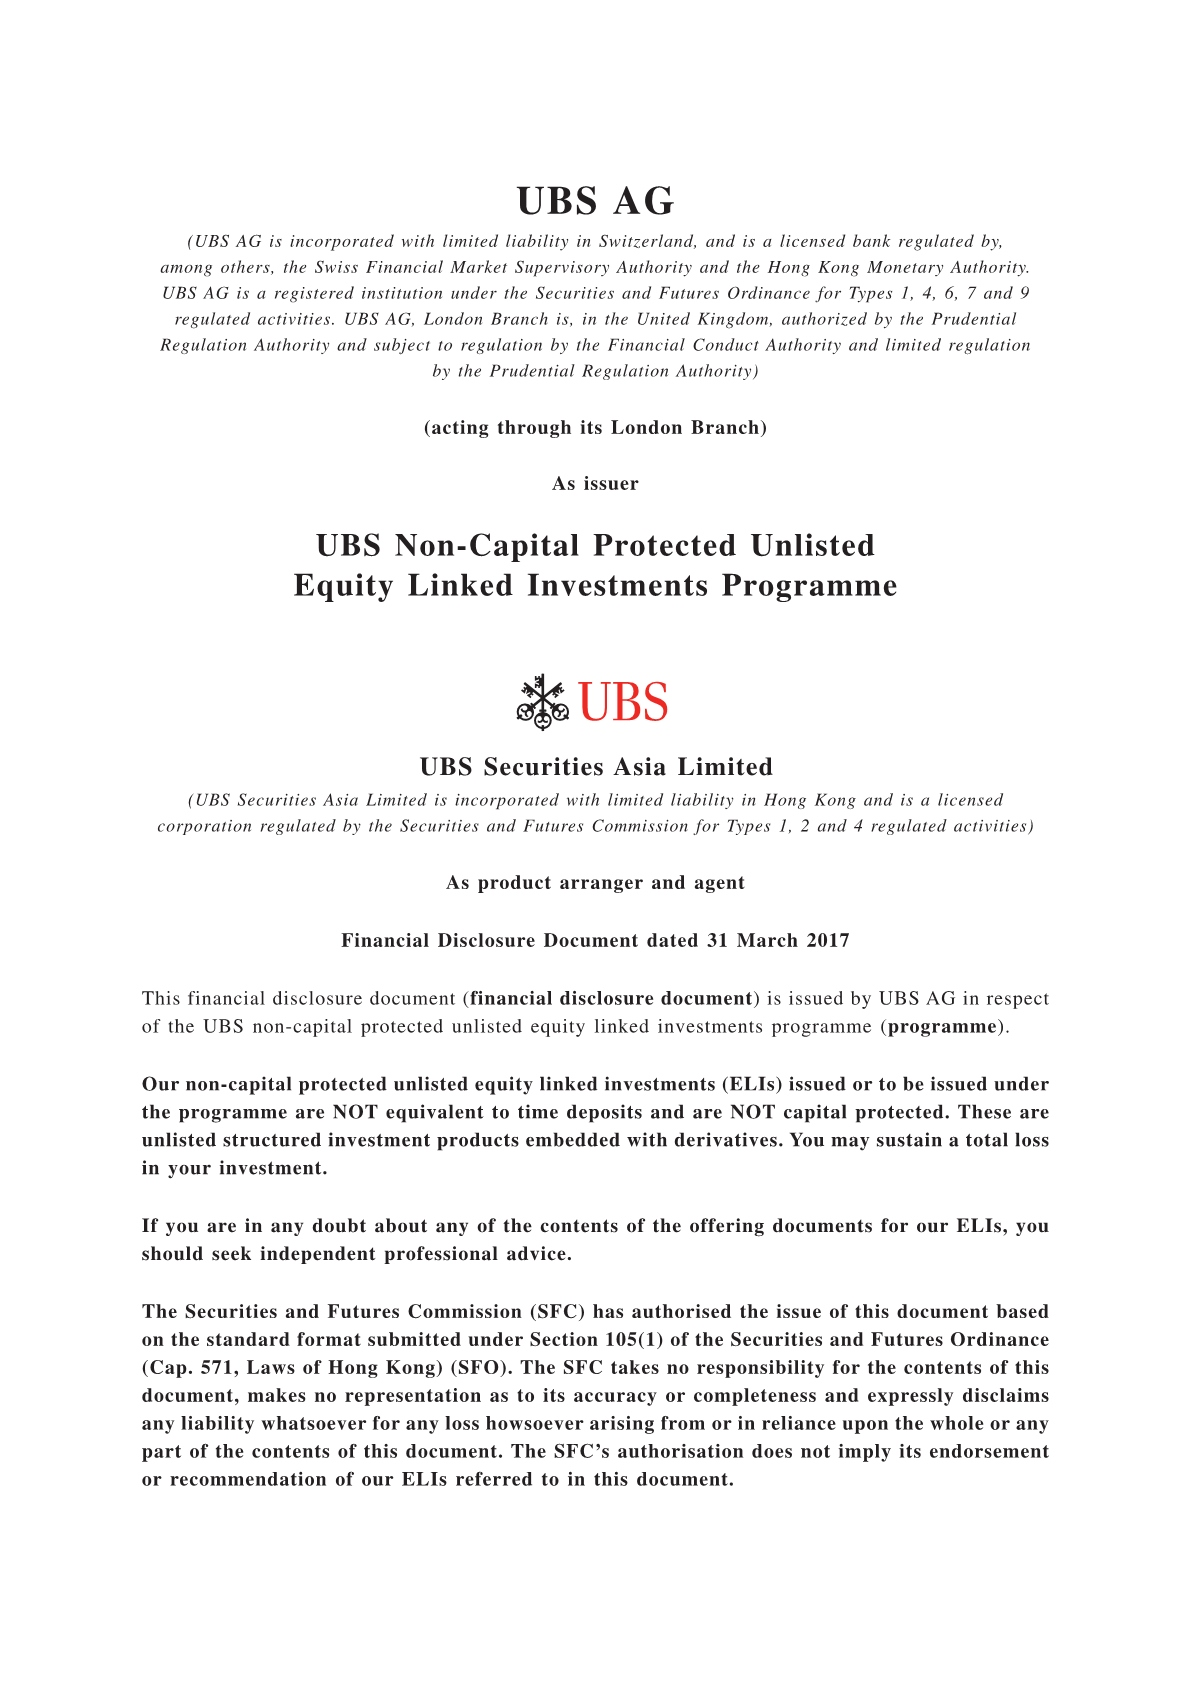 UBS AG – Financial Disclosure Document